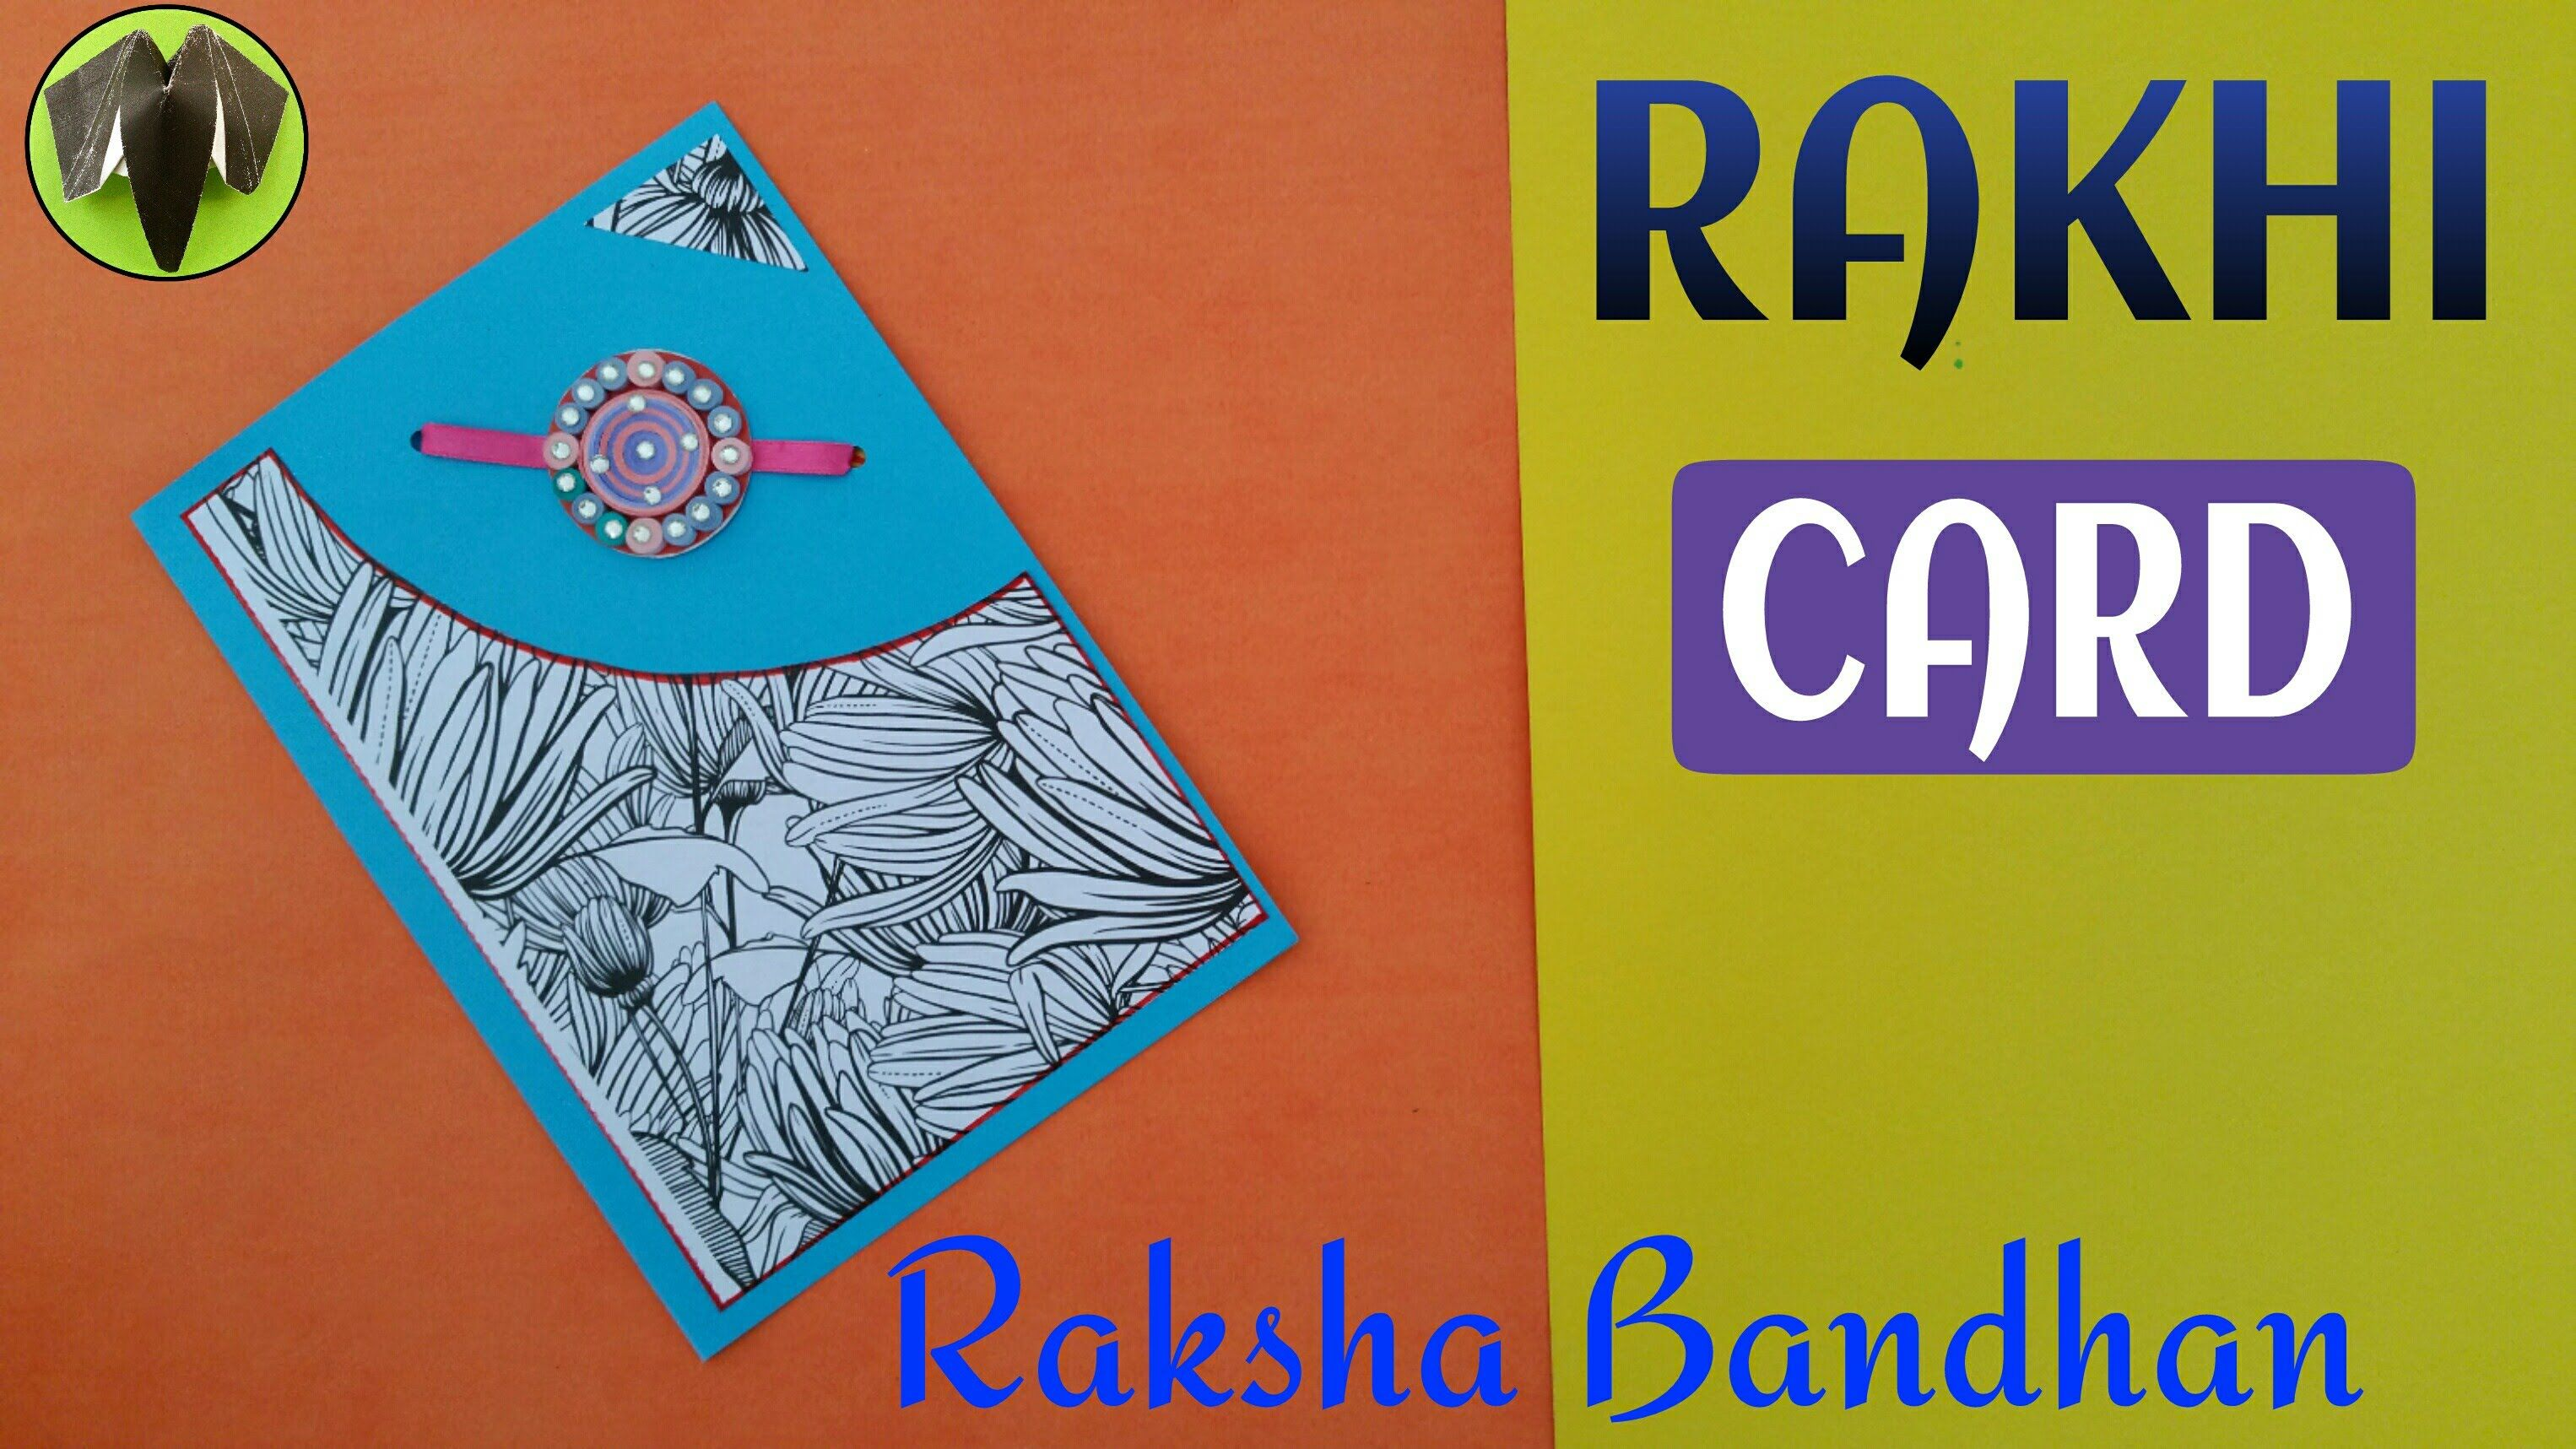 Tutorial To Make An Easy Rakhi Card Greetings Card For Raksha